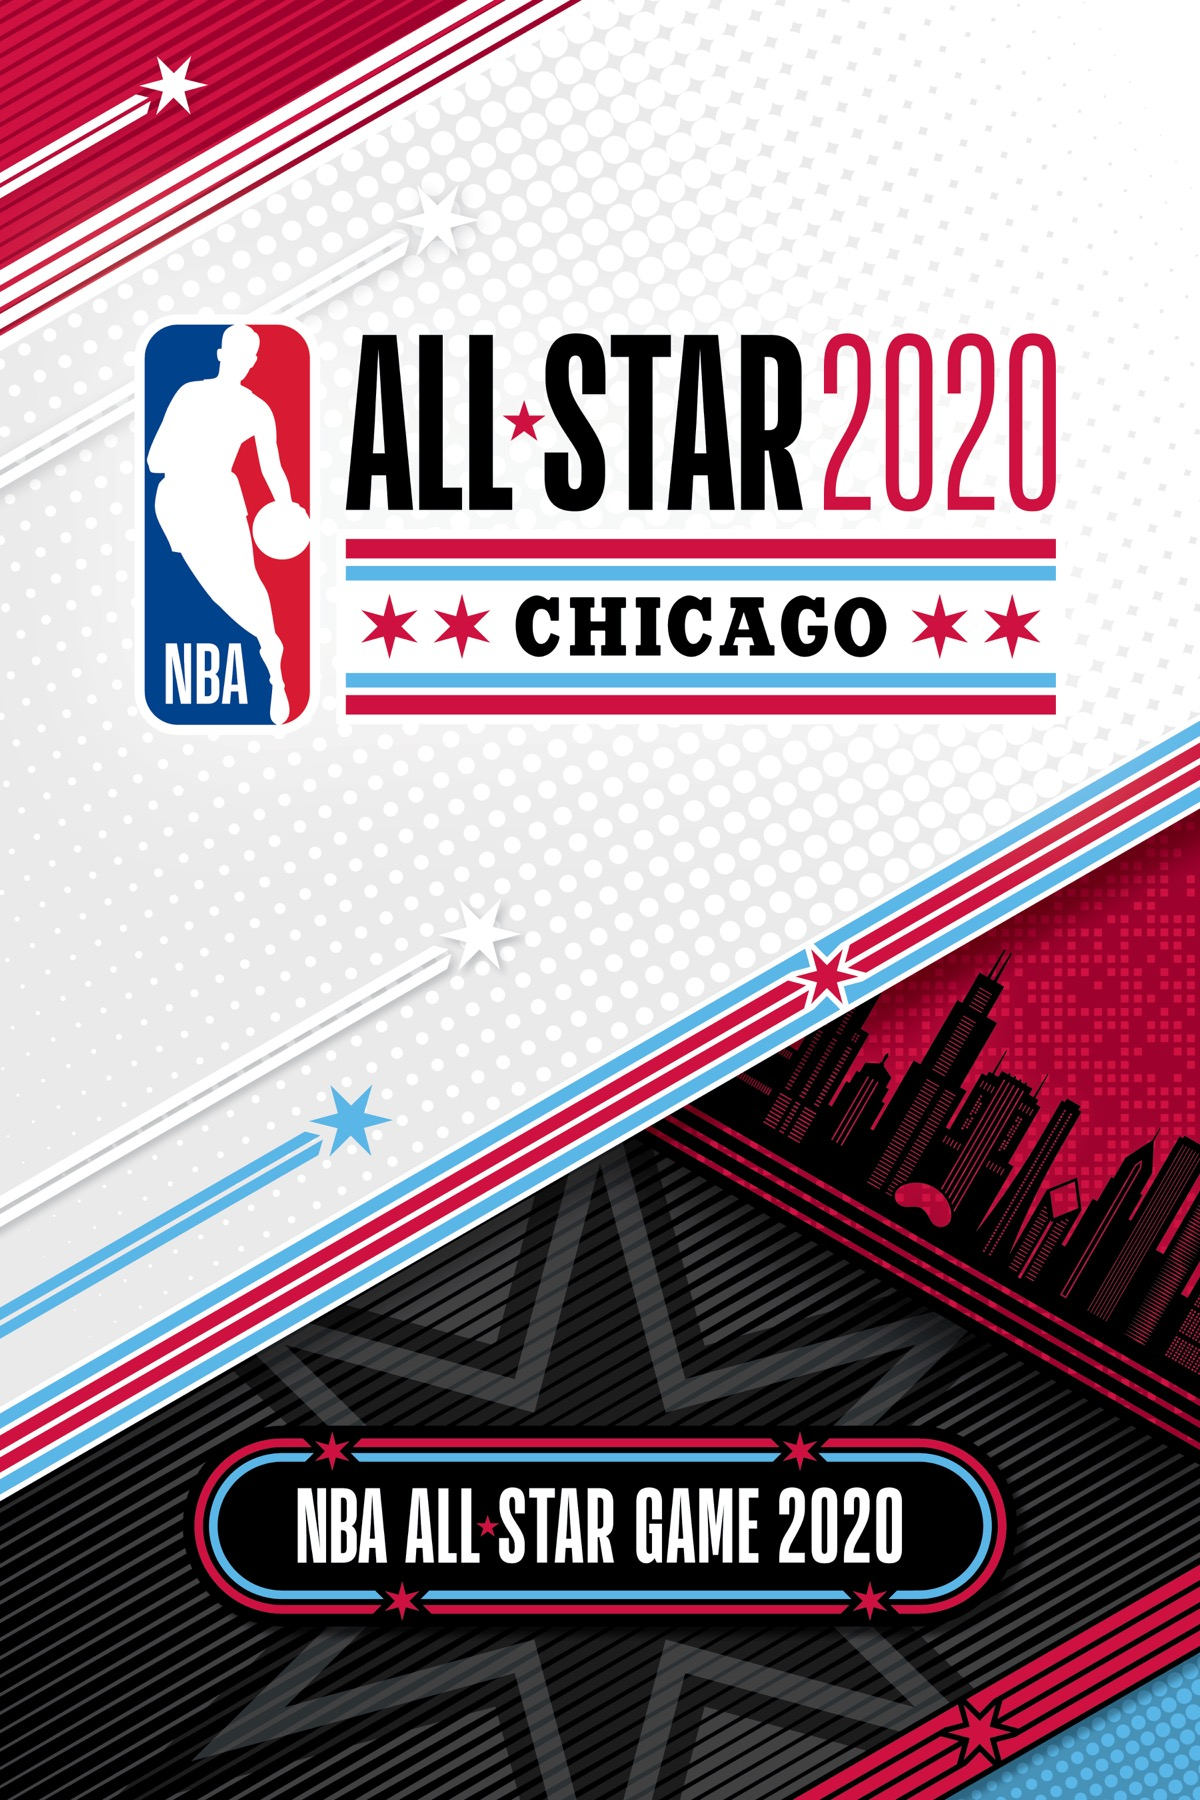 Nba All Star Halftime Show 2020.2020 Nba All Star Game 02 14 2020 Choose Chicago